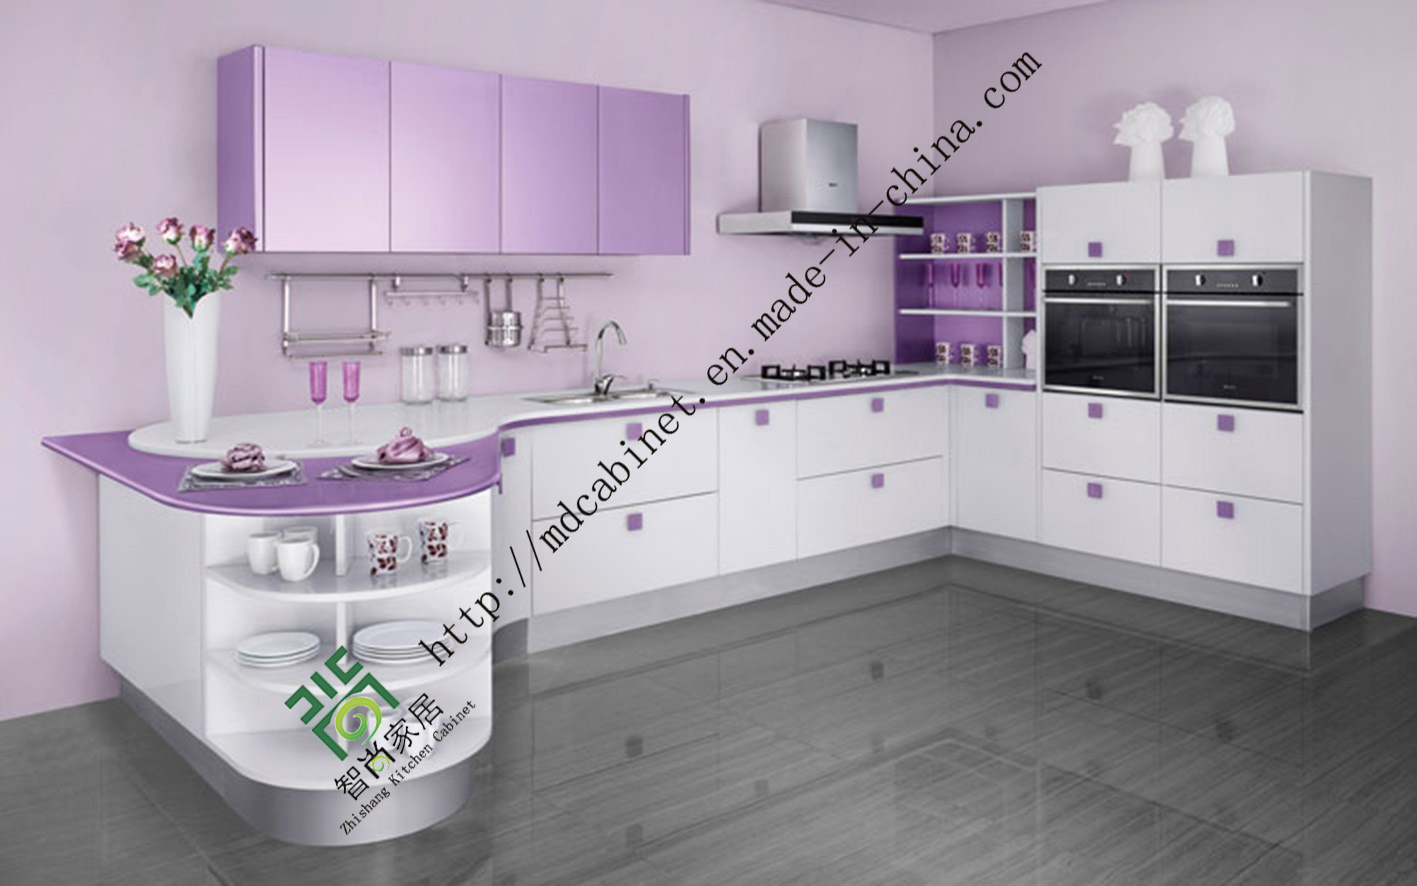 Superb img of  Wood Kitchen Cabinets Mdf Kitchen Cabinets Stainless Steel Kitchen with #2F673E color and 1417x886 pixels